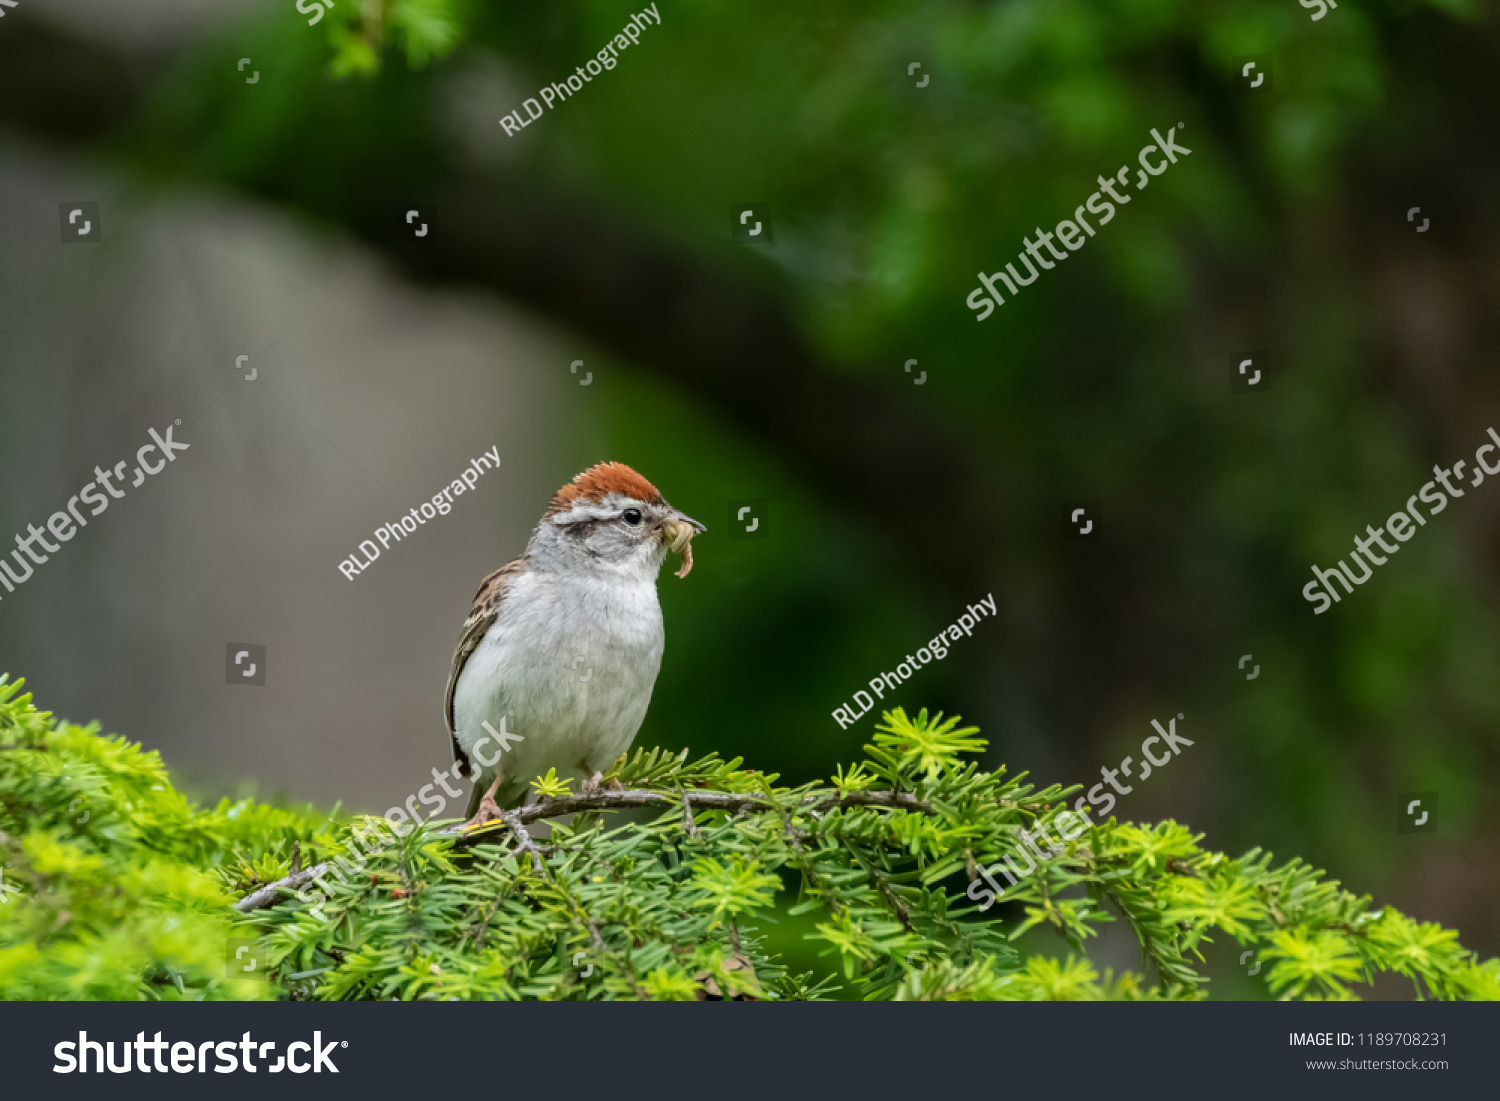 An image of a brown sparrow perched on an evergreen branch overlooking a field at the edge of a forest with a freshly caught breakfast caterpillar in its beak.